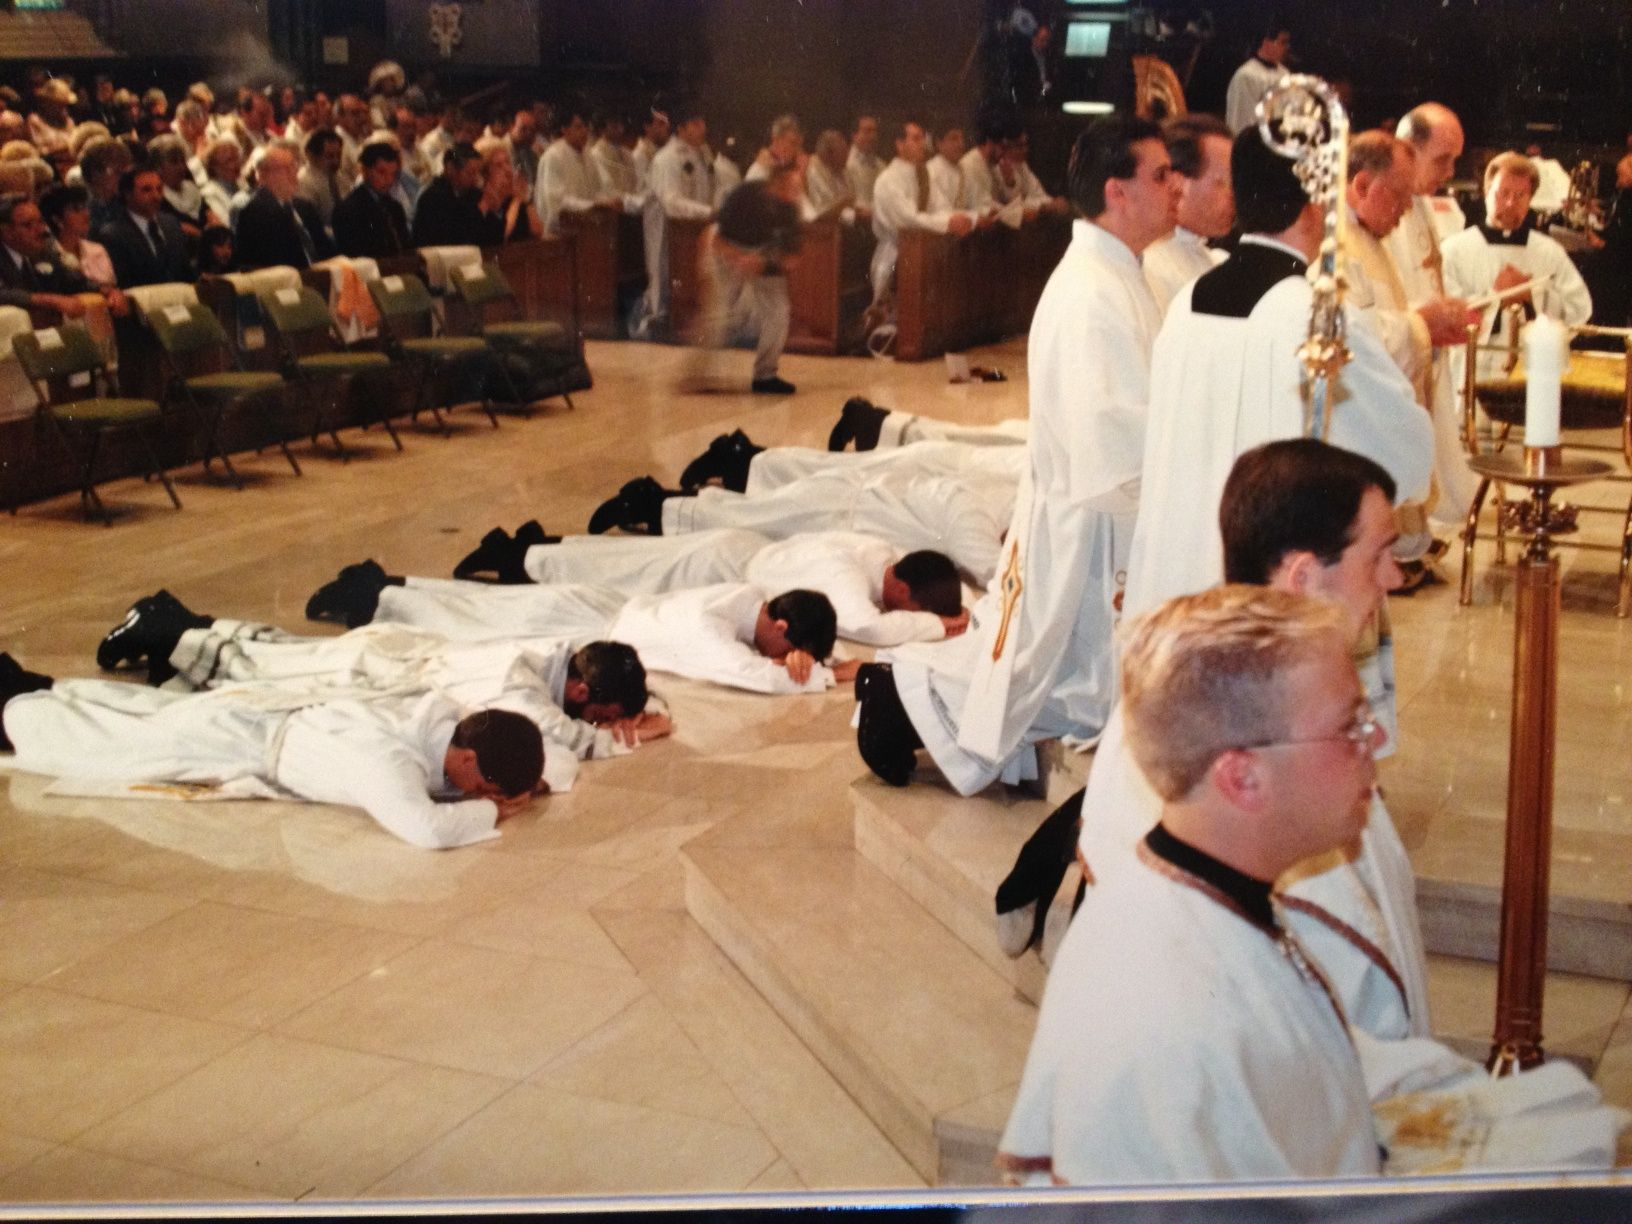 Teaching During The Sacrament Of Holy Orders The Men Lay Prostrate On The Floor This Is A Sign Of Service To The Sacrament Of Holy Orders Men Lie Sacrament